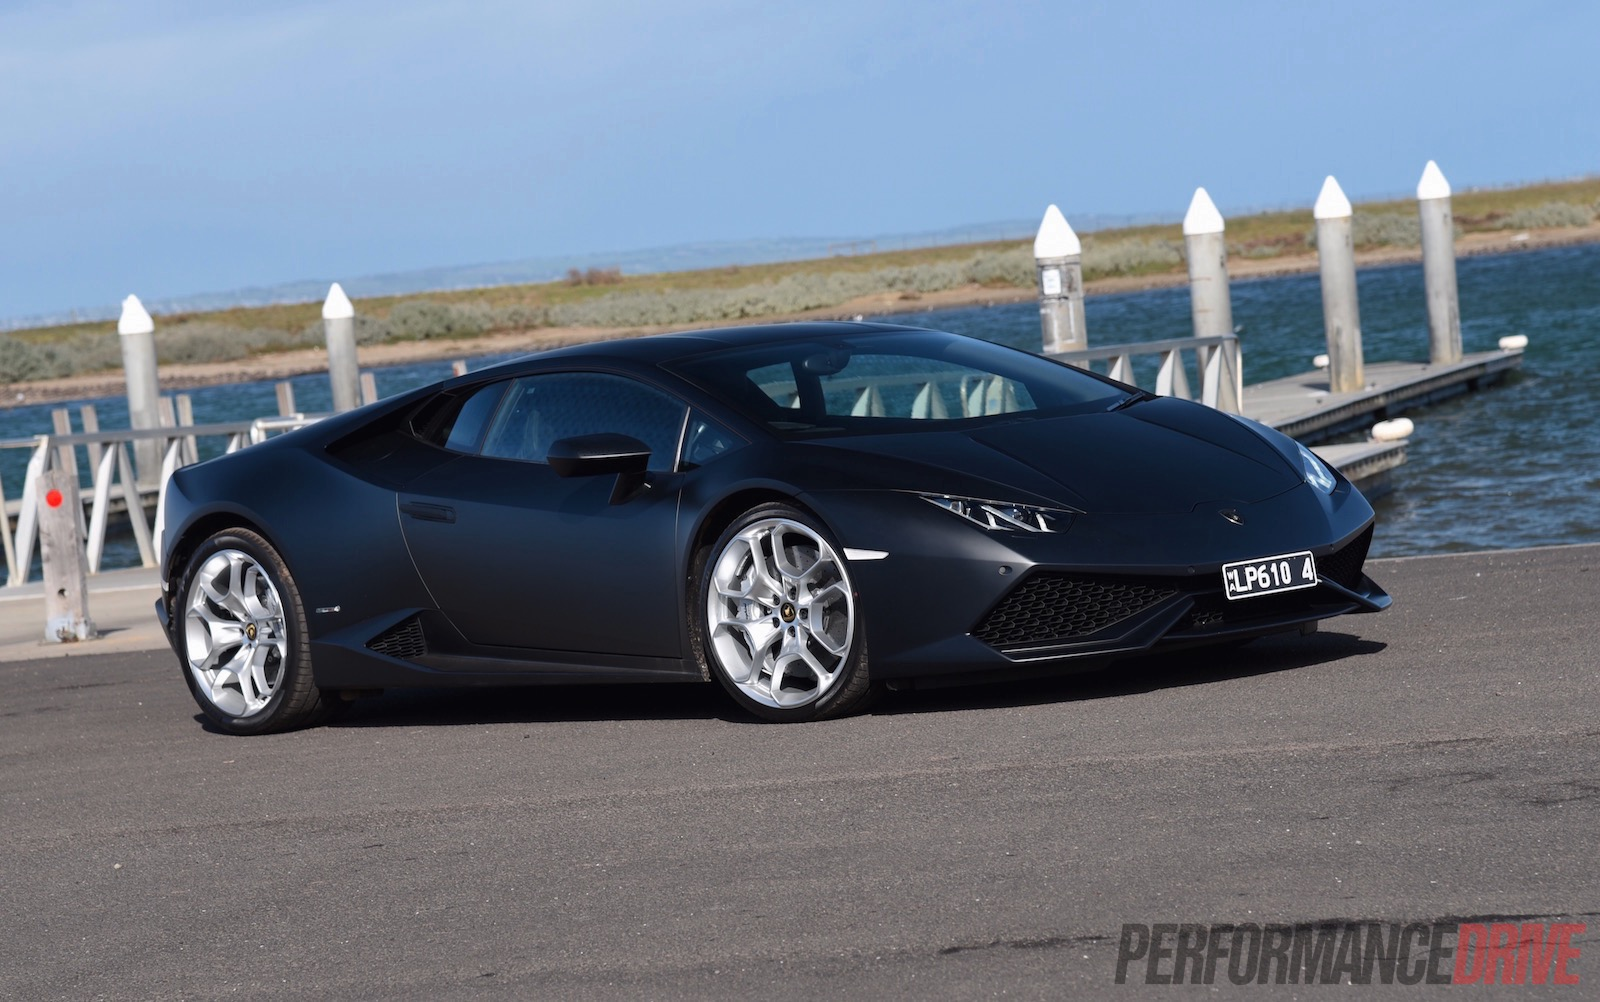 Lamborghini Huracan Lp610 4 Review Video Performancedrive